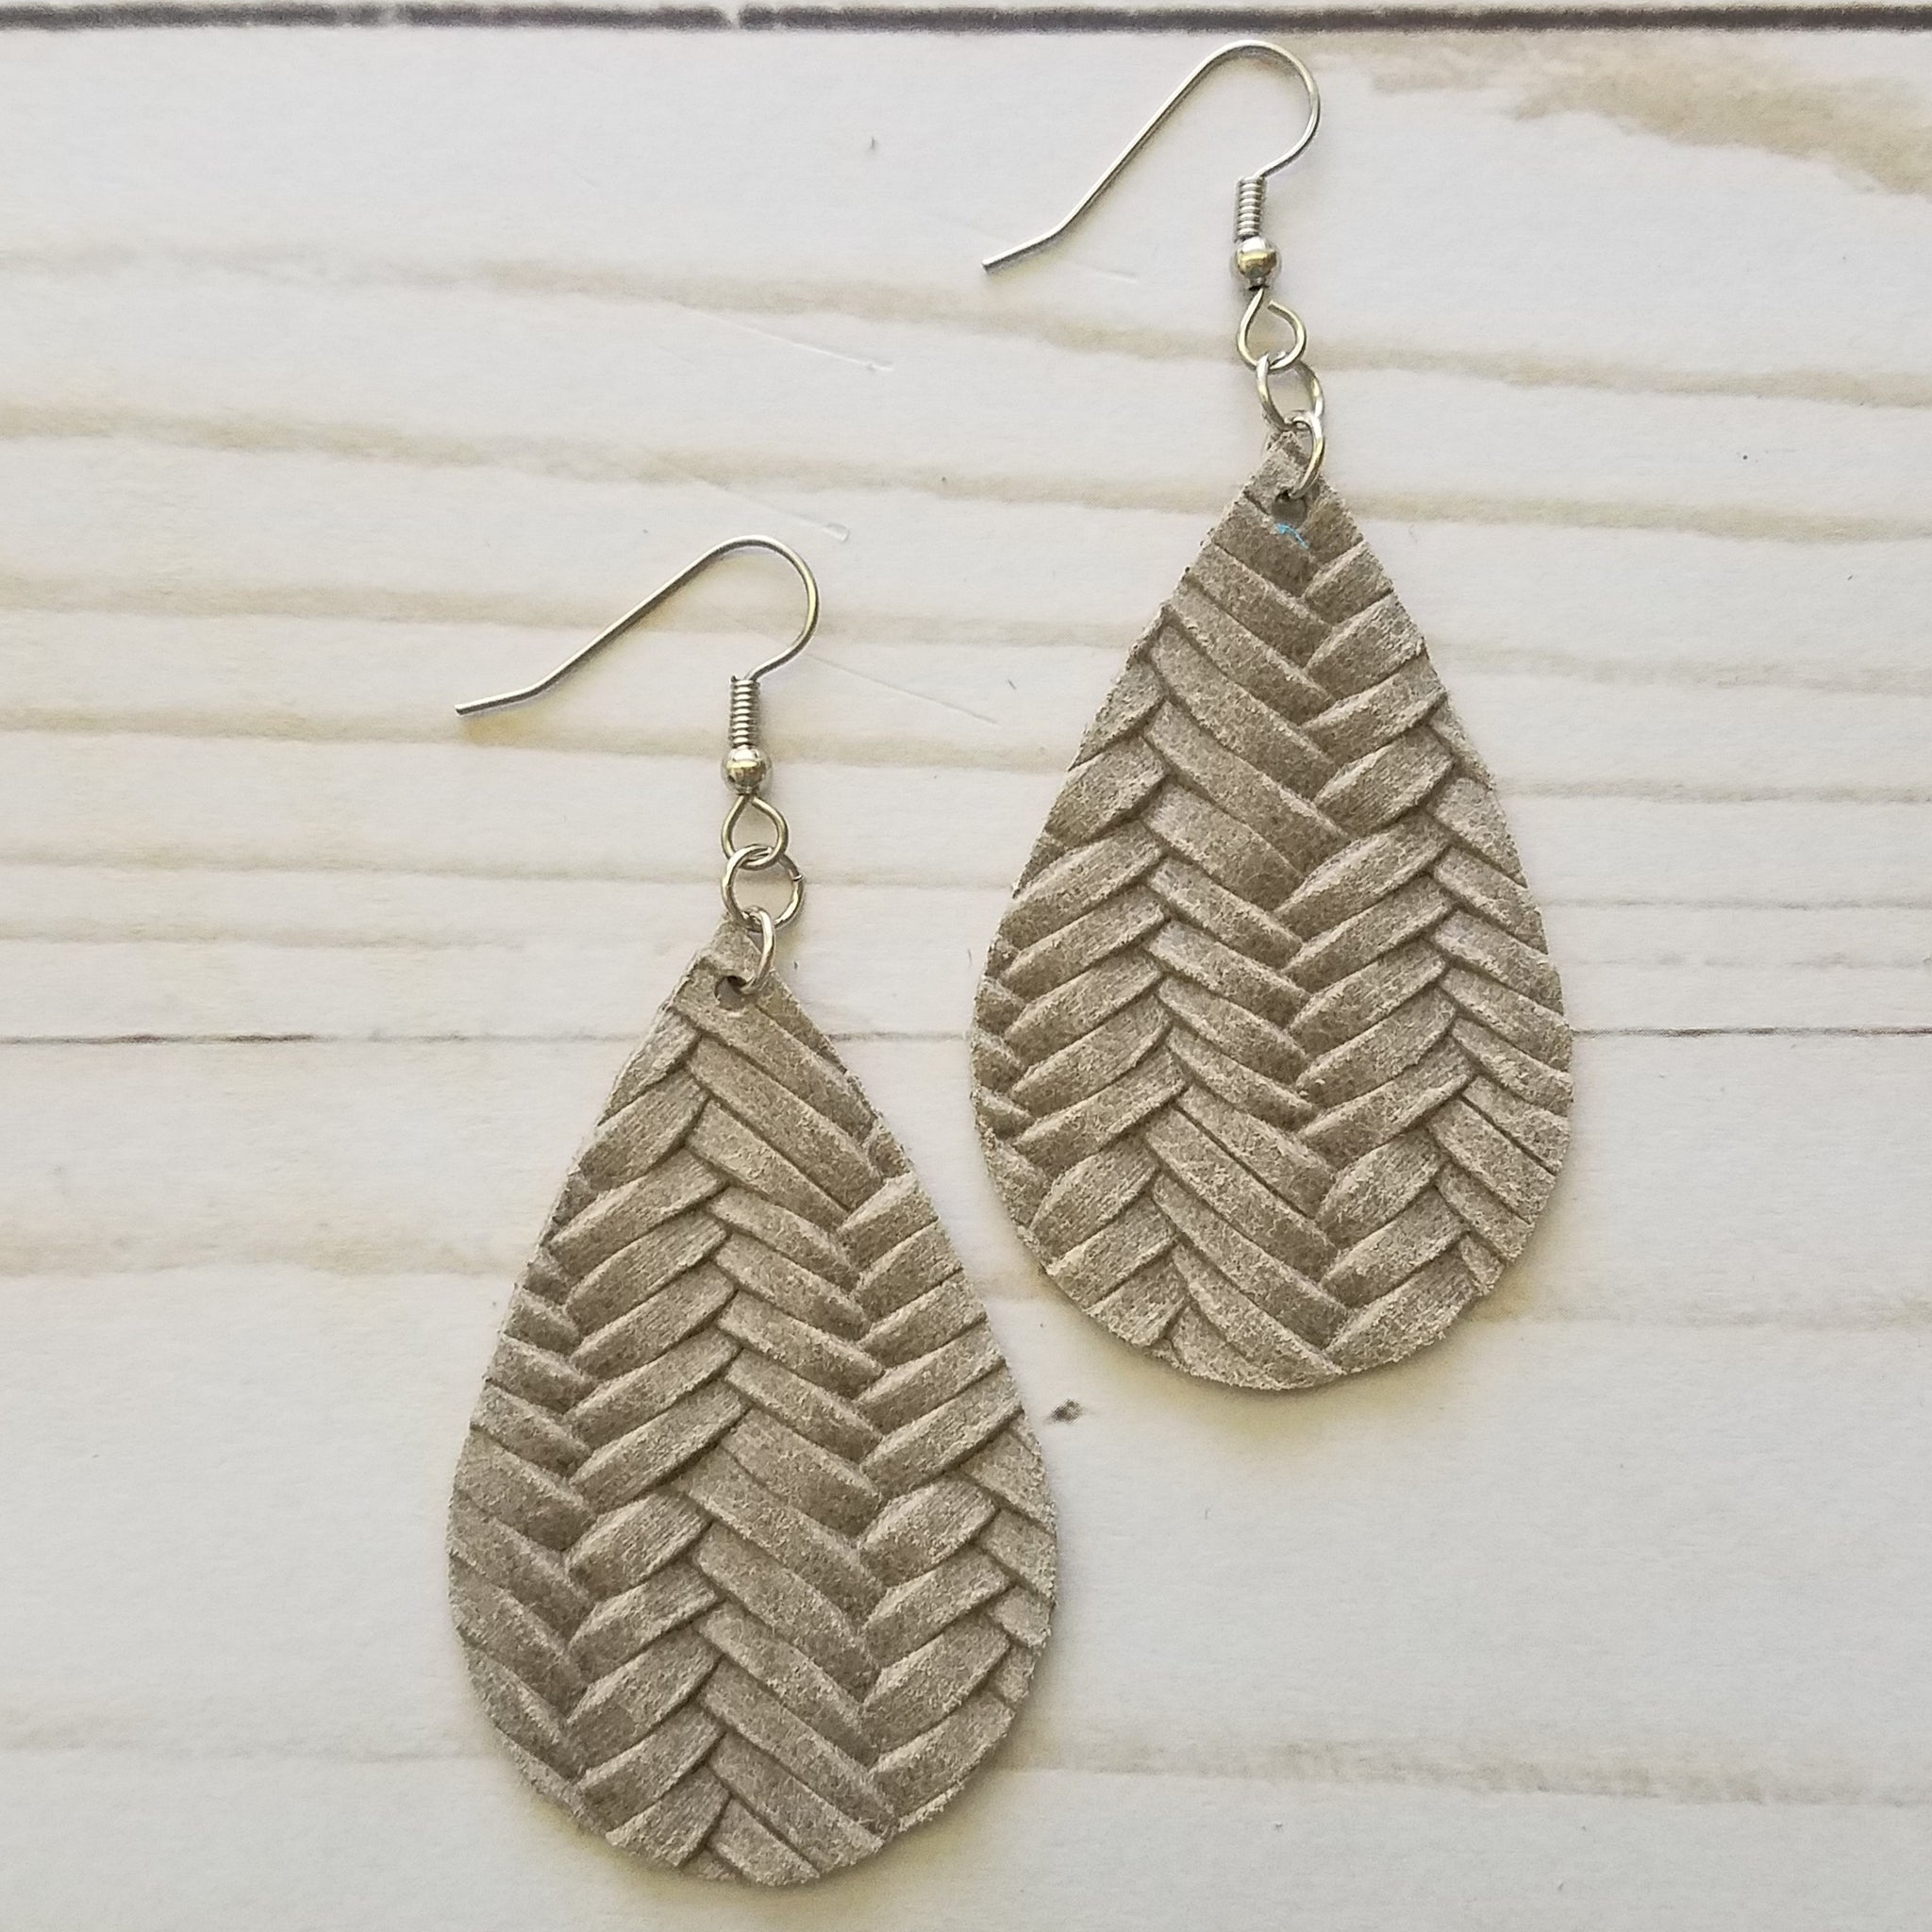 Stone Fish Tail Braid Leather Drop Earrings